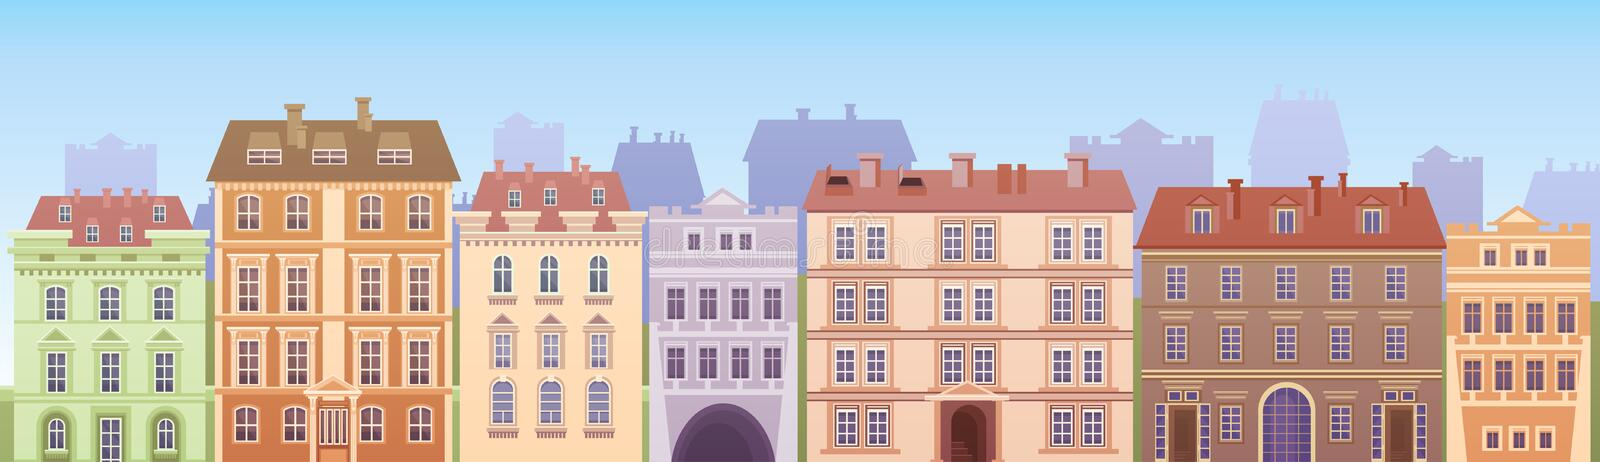 Cartoon Houses Buildings Old Town View Banner Skyline. Flat Vector Illustration royalty free illustration